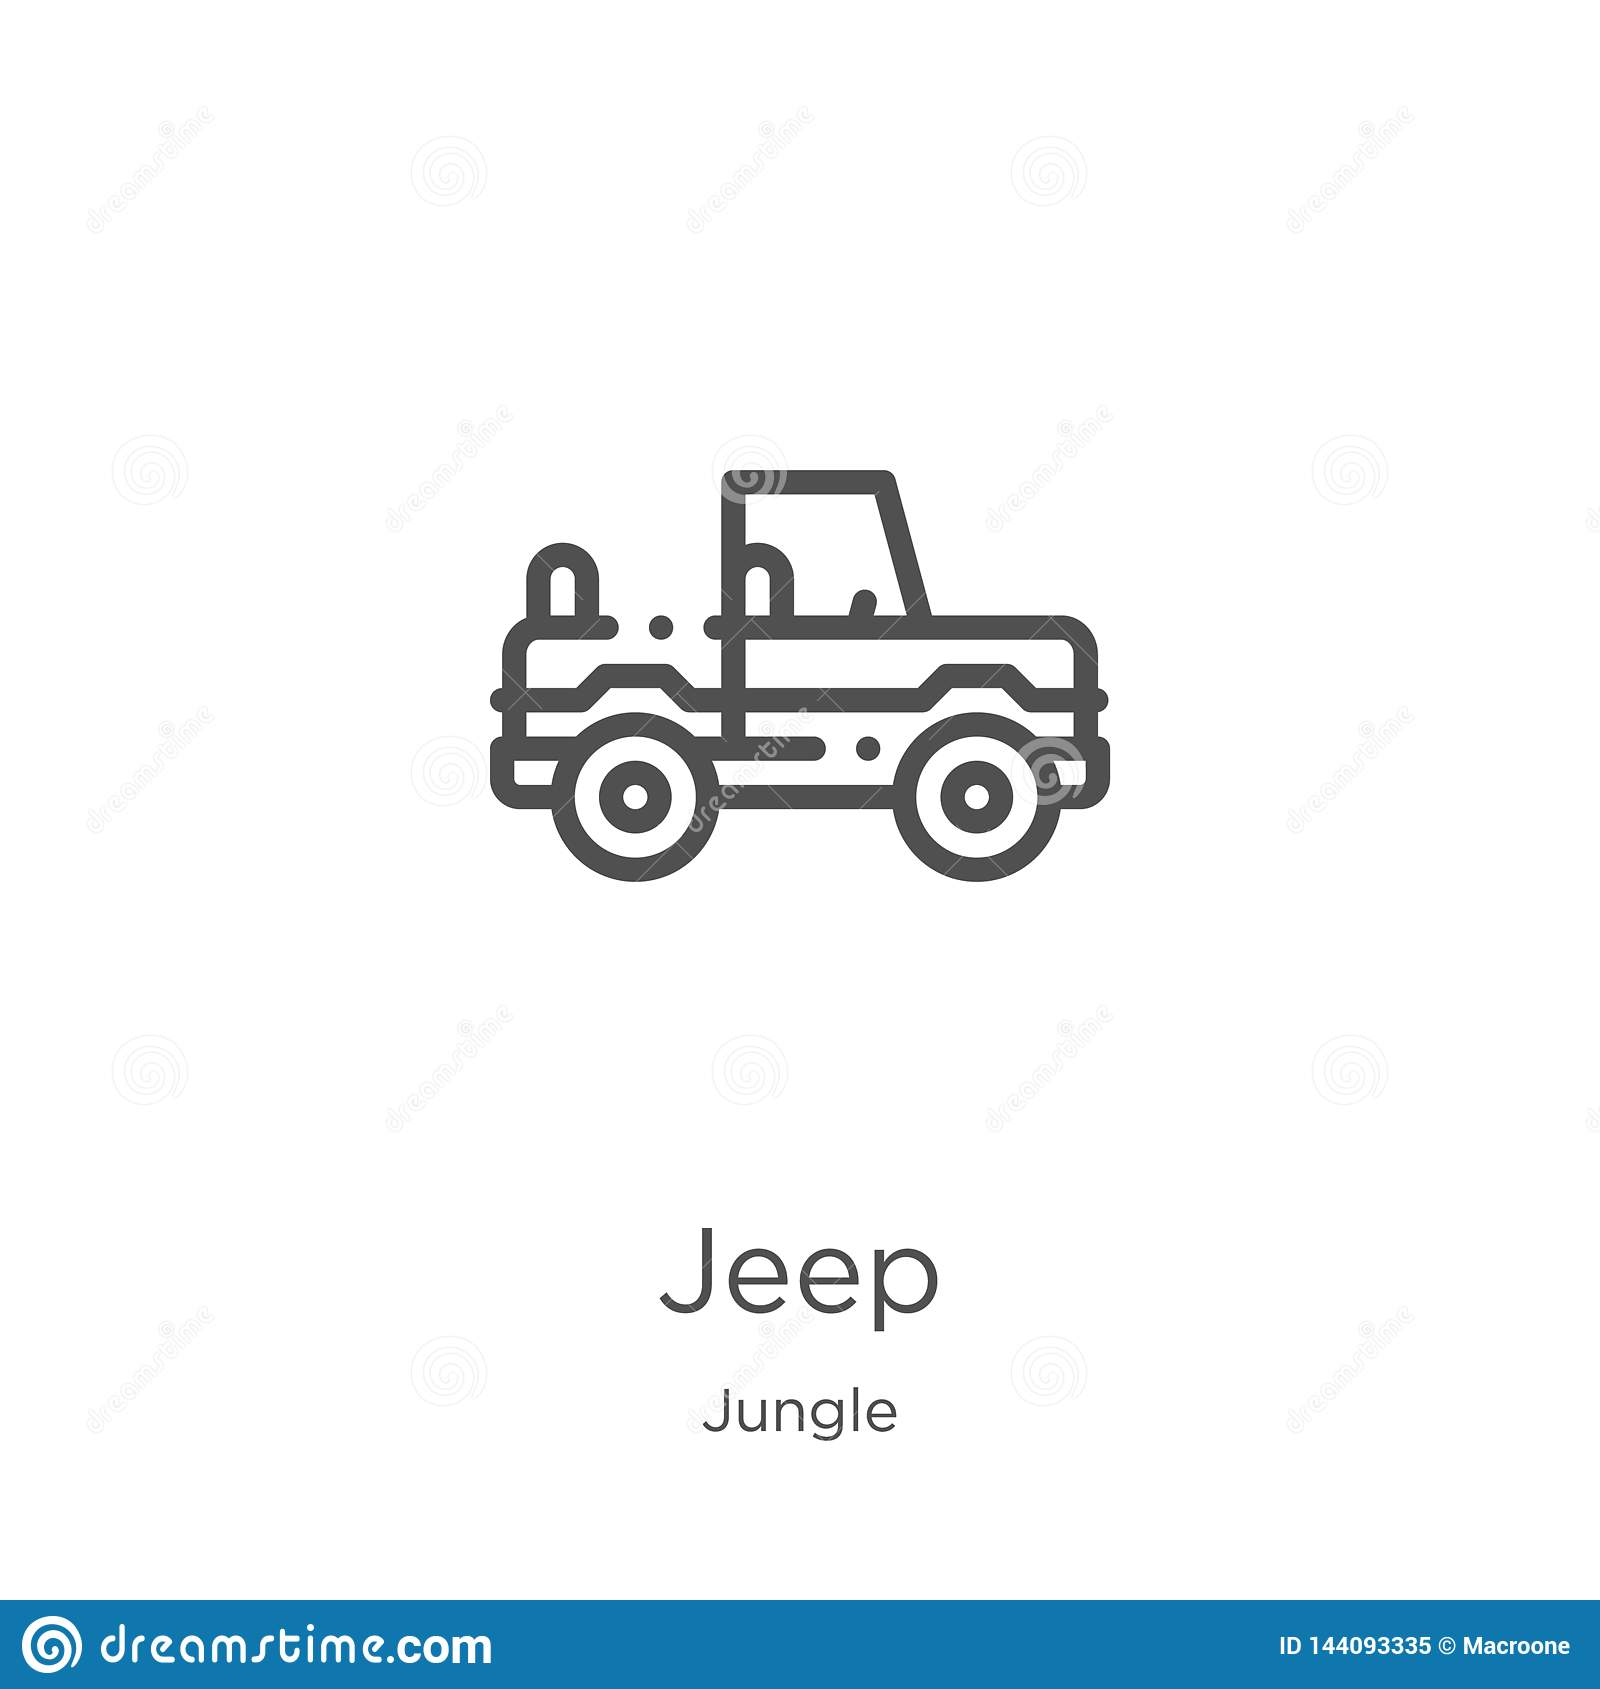 jeep icon vector from